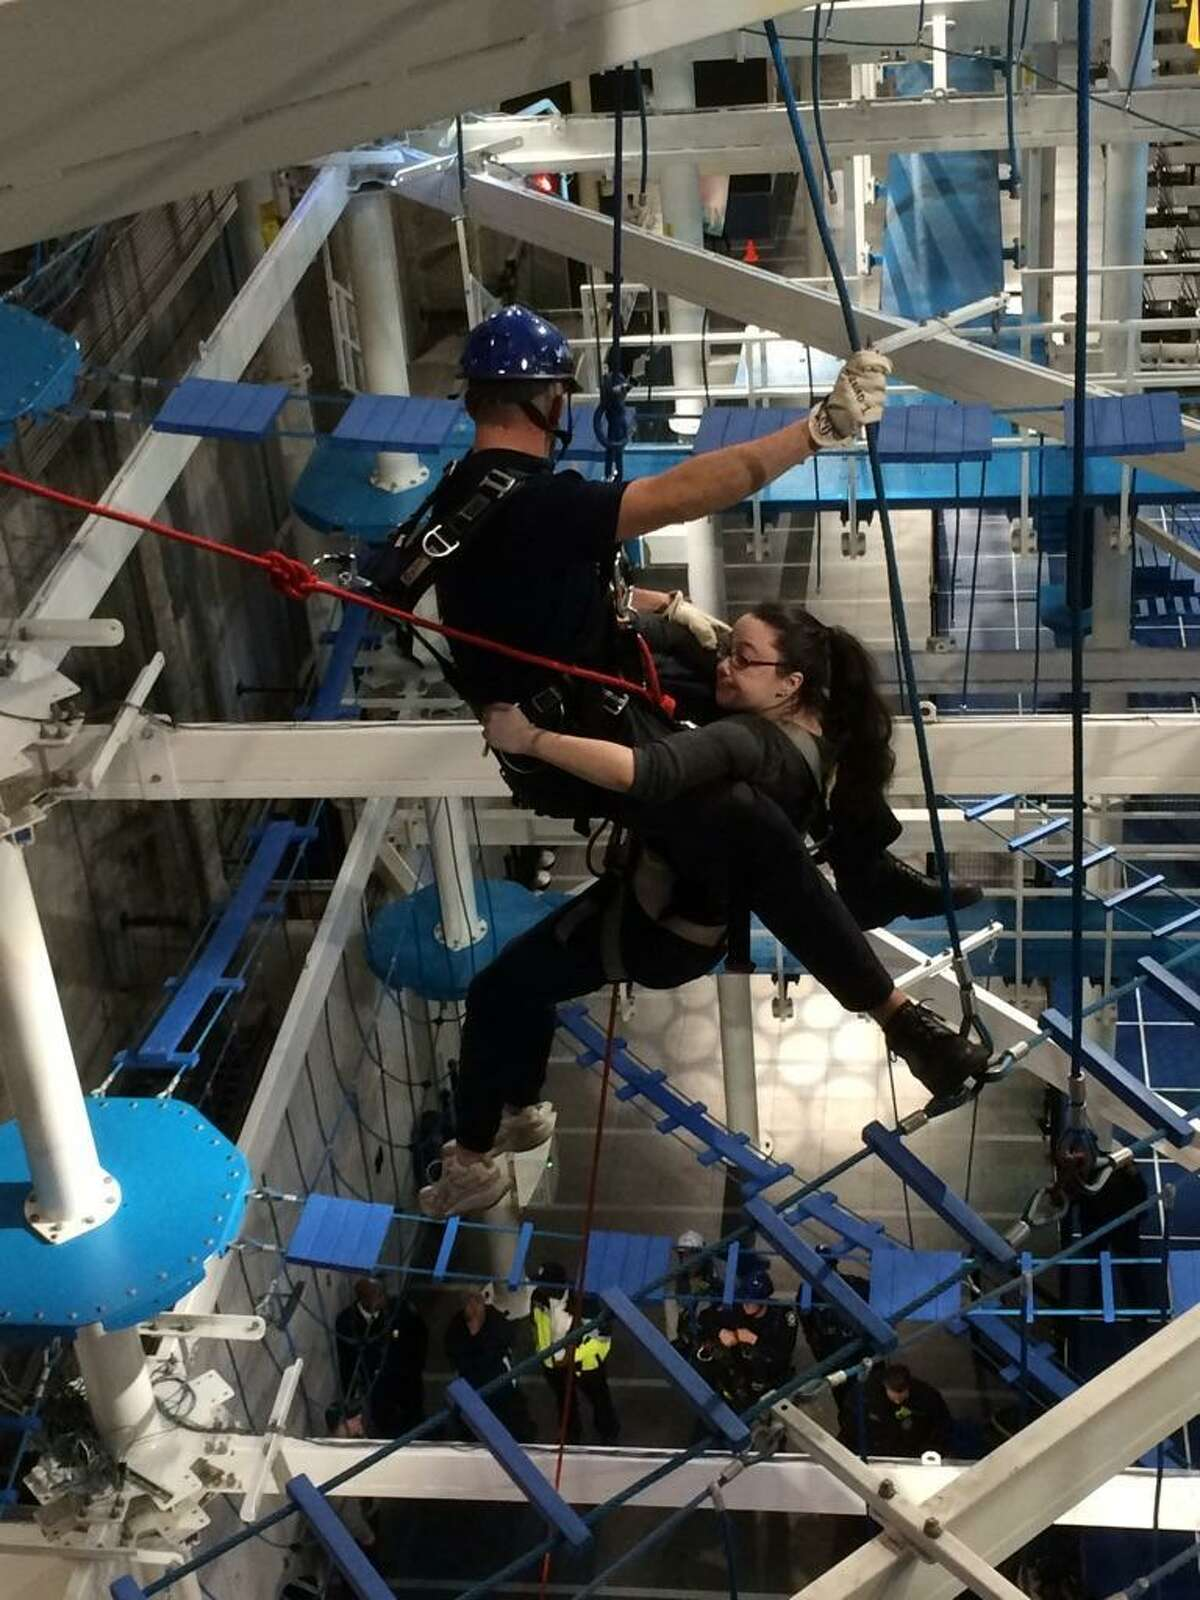 About 15 New Haven firefighters performed a series of training evolutions at Jordan?'s Furniture It Adventure Indoor Ropes Course Friday morning.